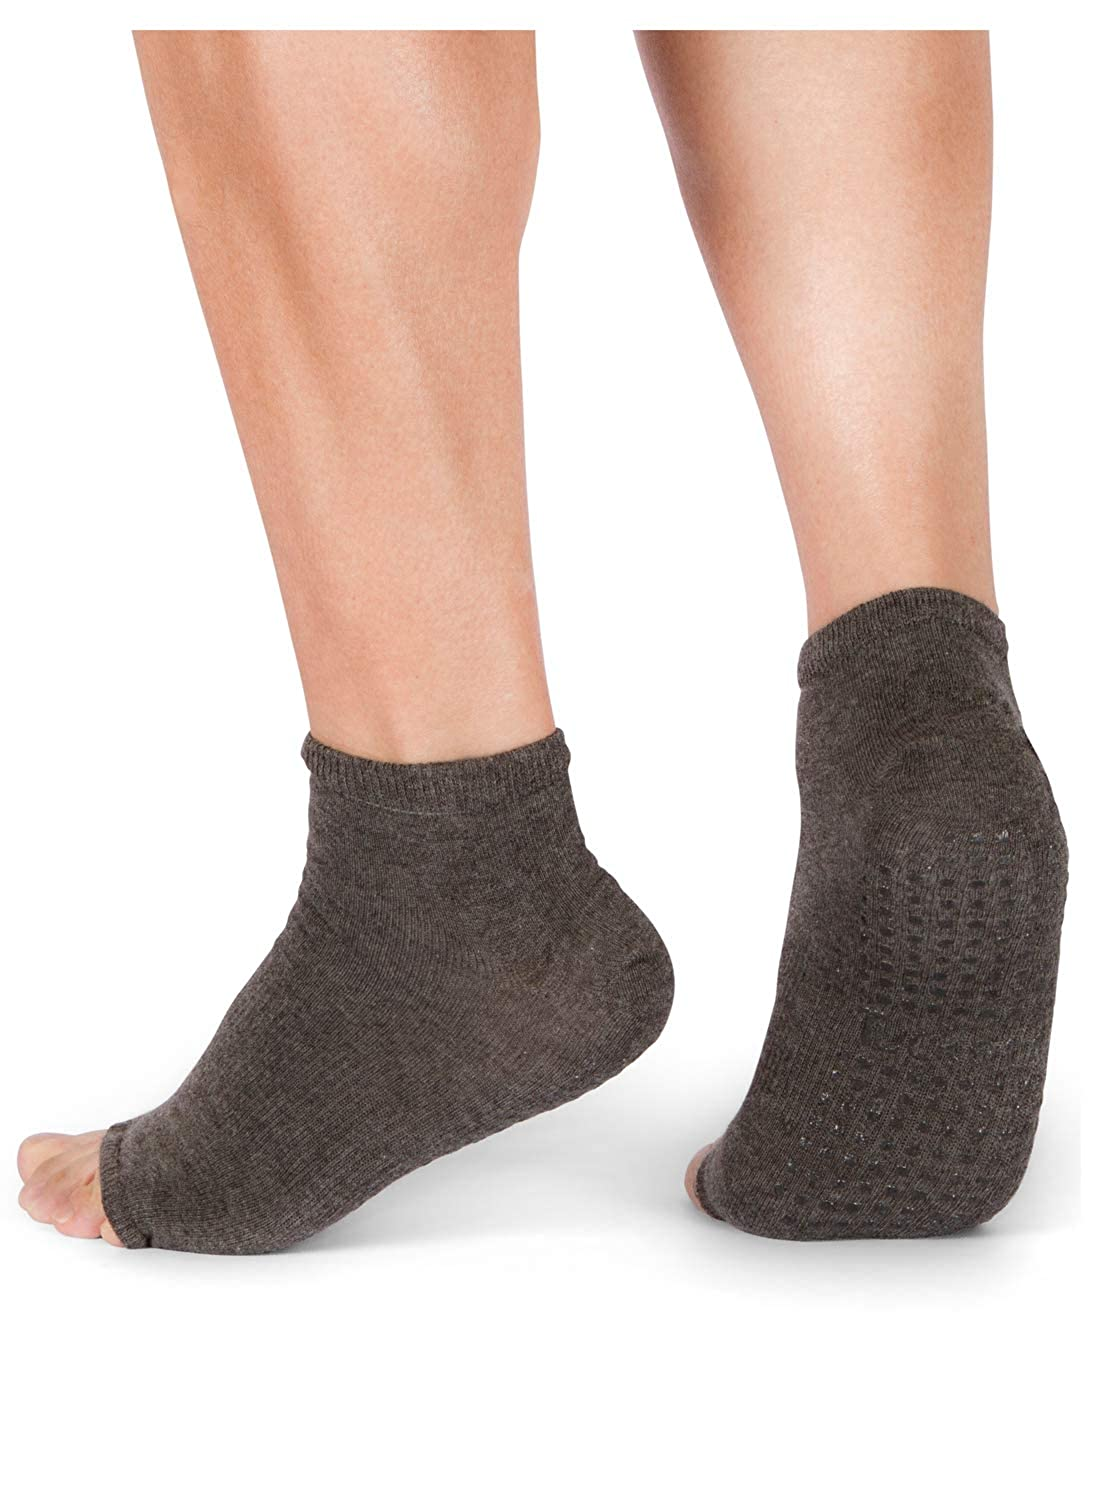 a0e916598 Amazon.com  Tucketts Womens Yoga Socks